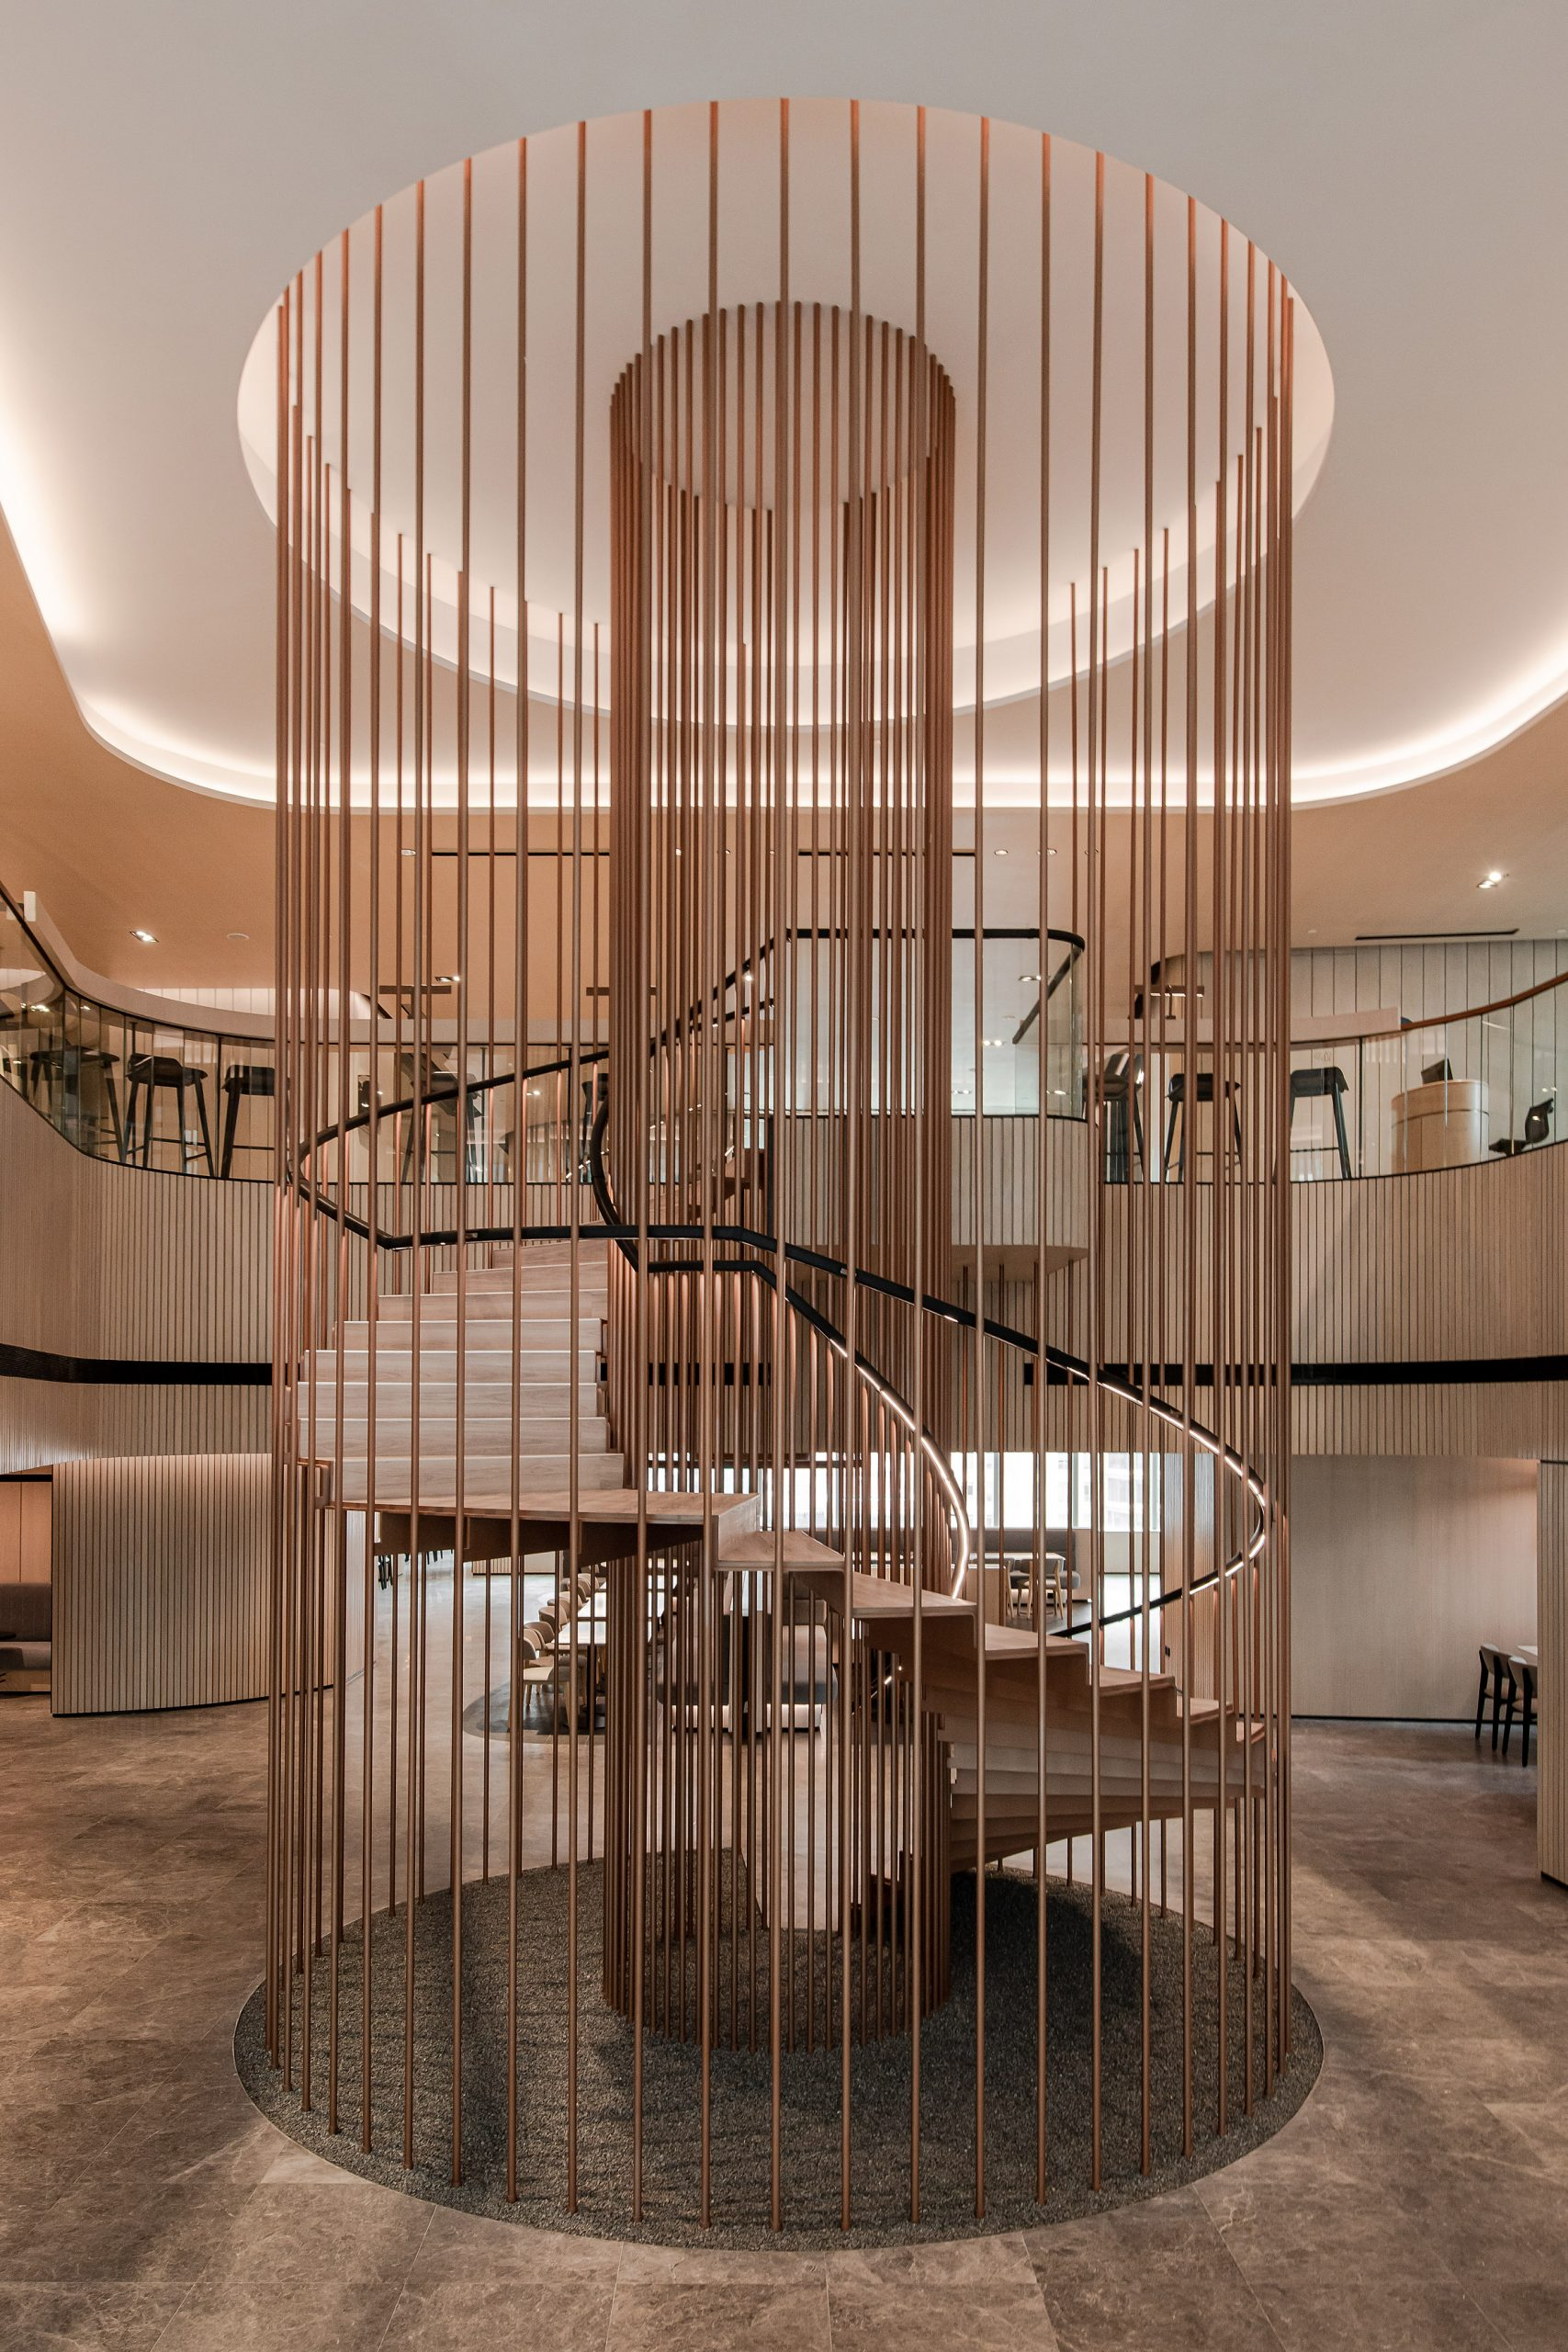 The staircase by Ministry of Design inside YTL Headquarters in Kuala Lumpur